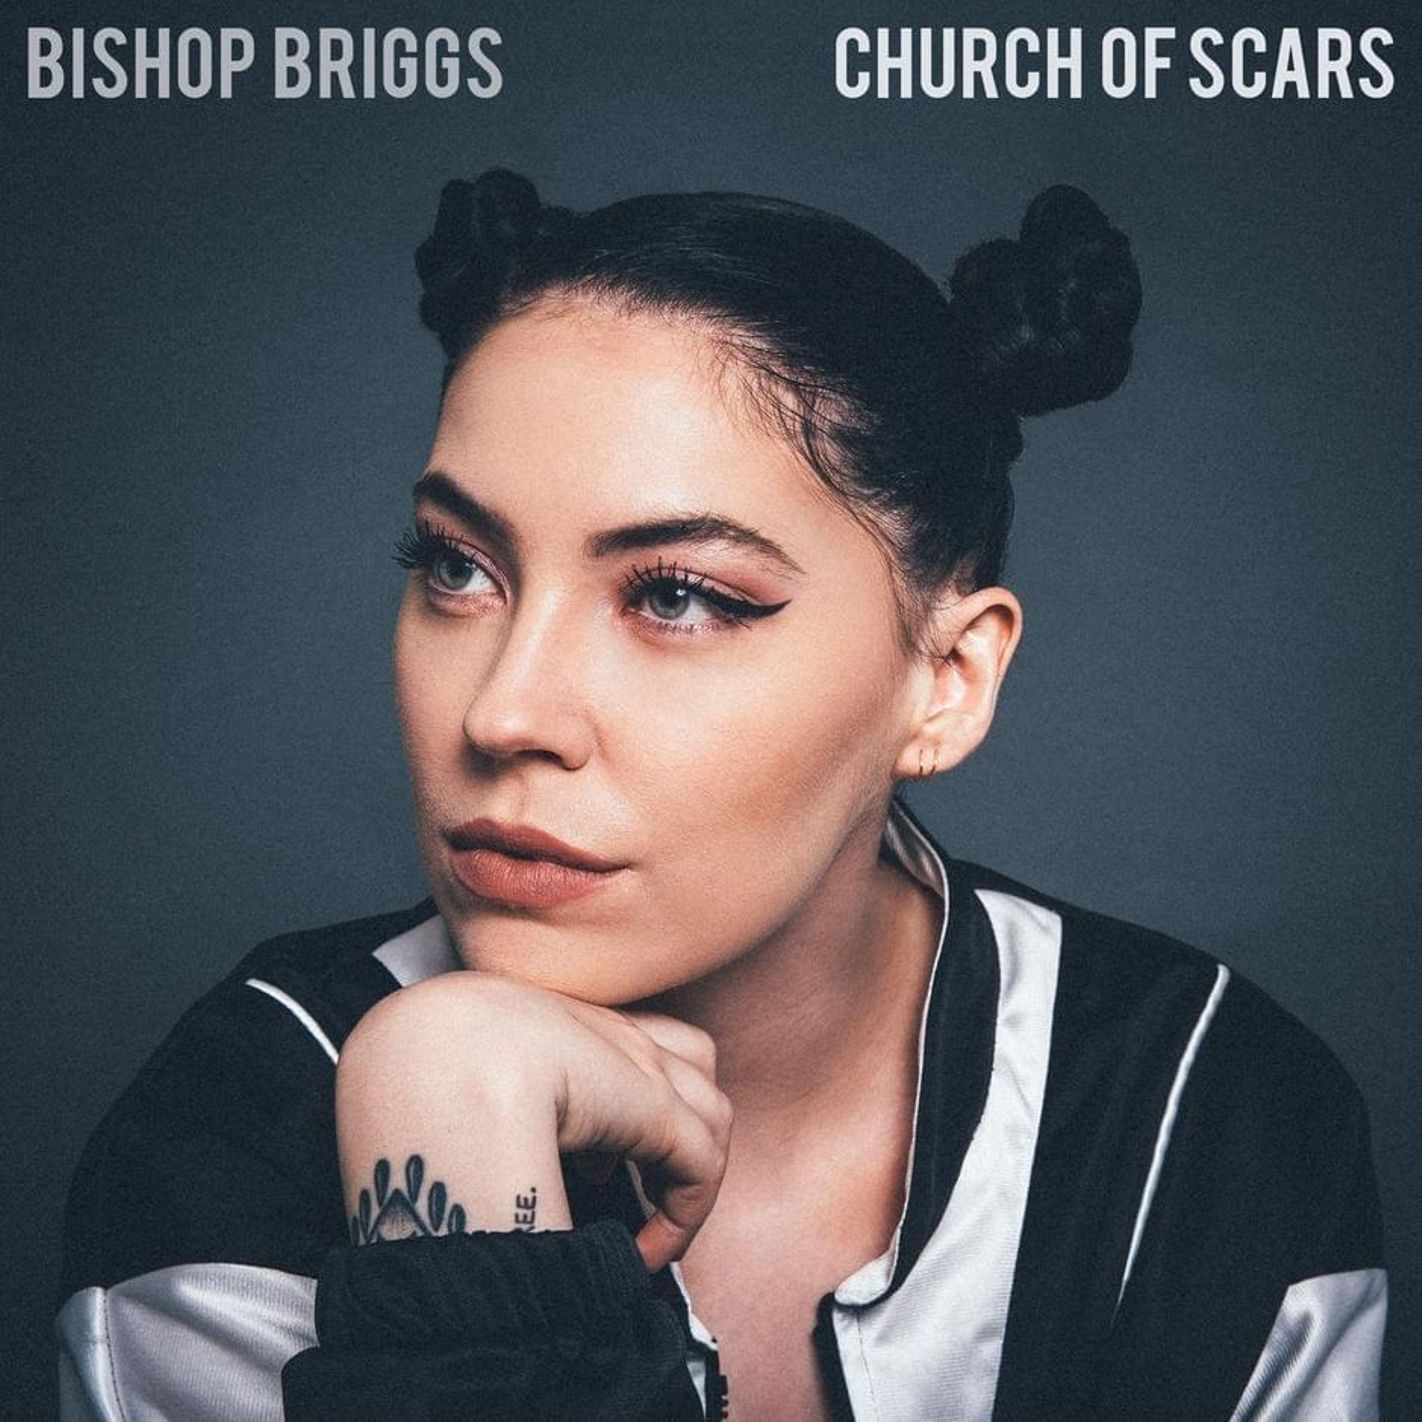 Bishop Briggs -- Church of Scars